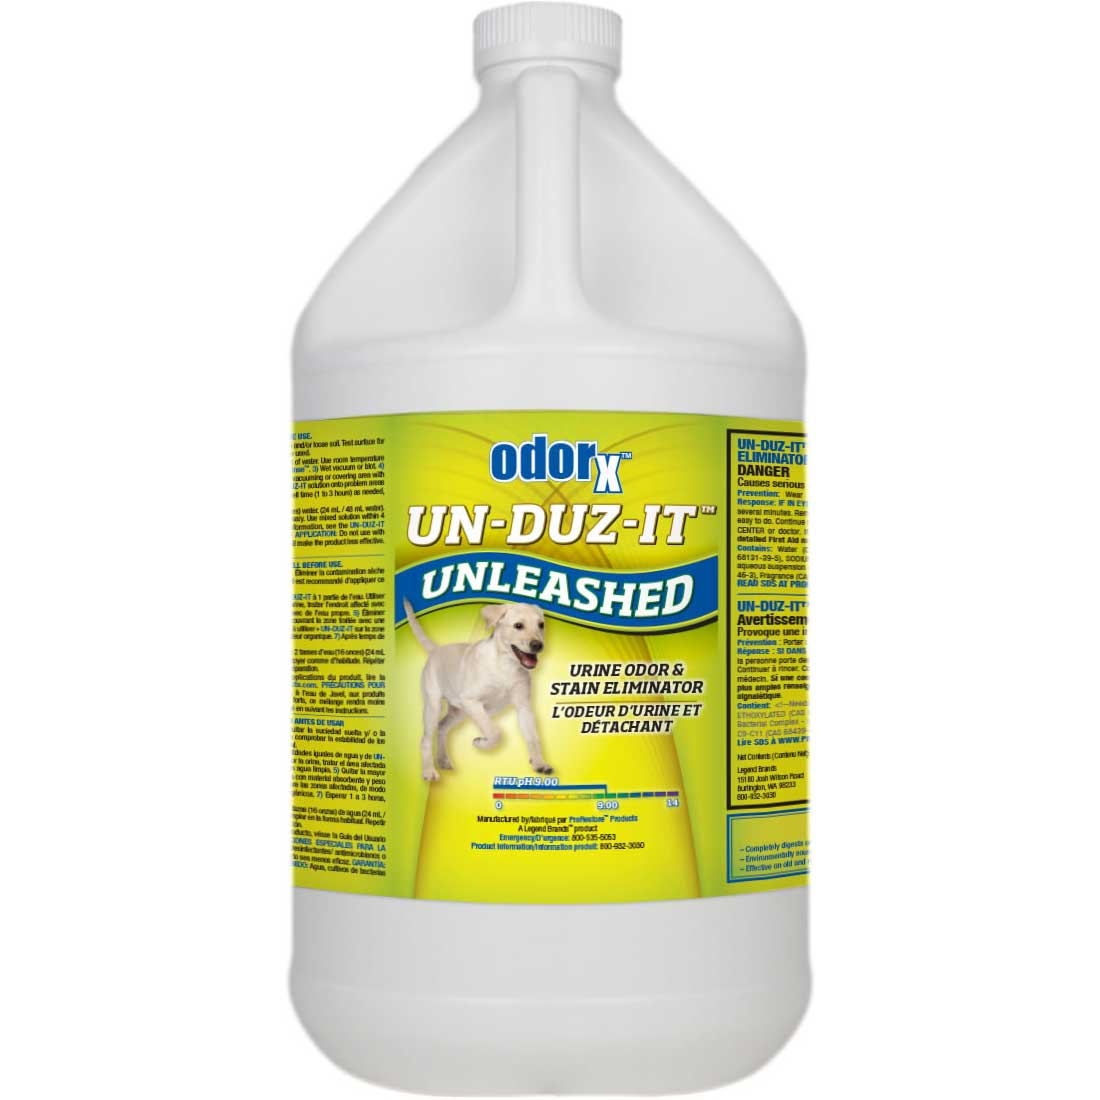 Chemspec 433162000 OdorX Un-Duz-It Unleashed Urine Odor and Stain Eliminator 4/1 Gallon case FREE Shipping